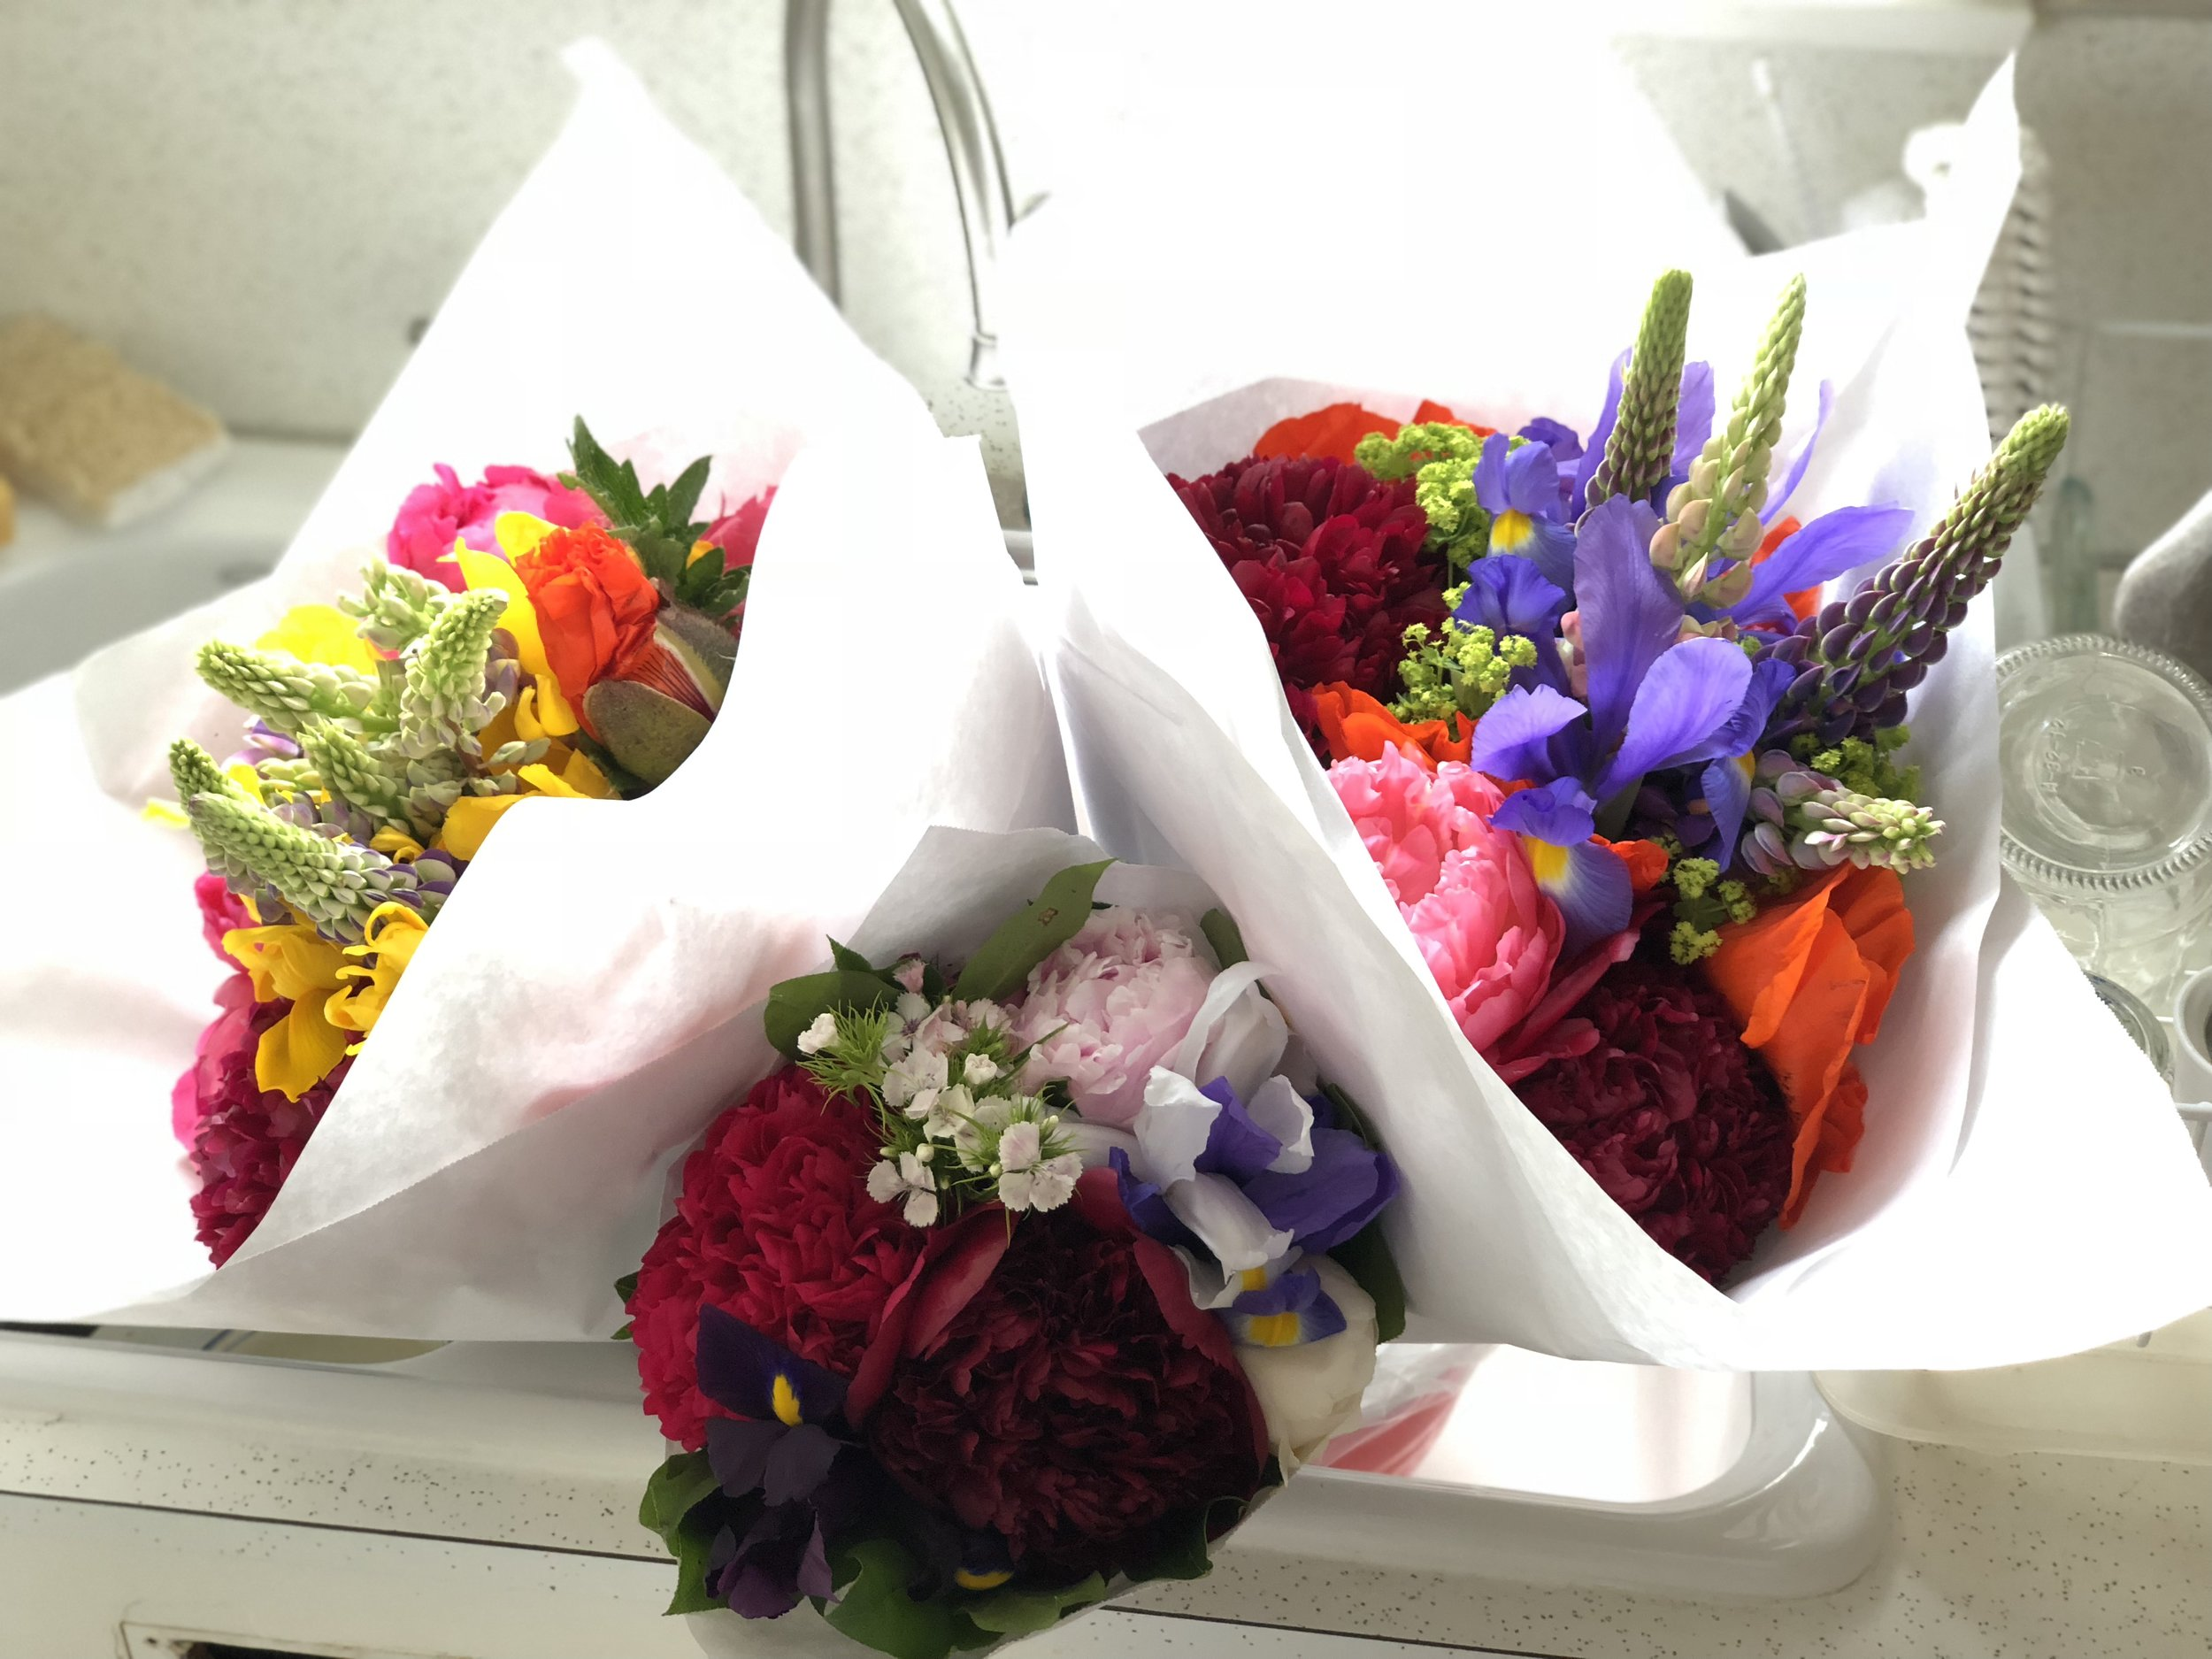 Broadway Market Bouquets - Sometimes you need 3! These were just $10 for the larger and $5 for the smaller. Amazing!